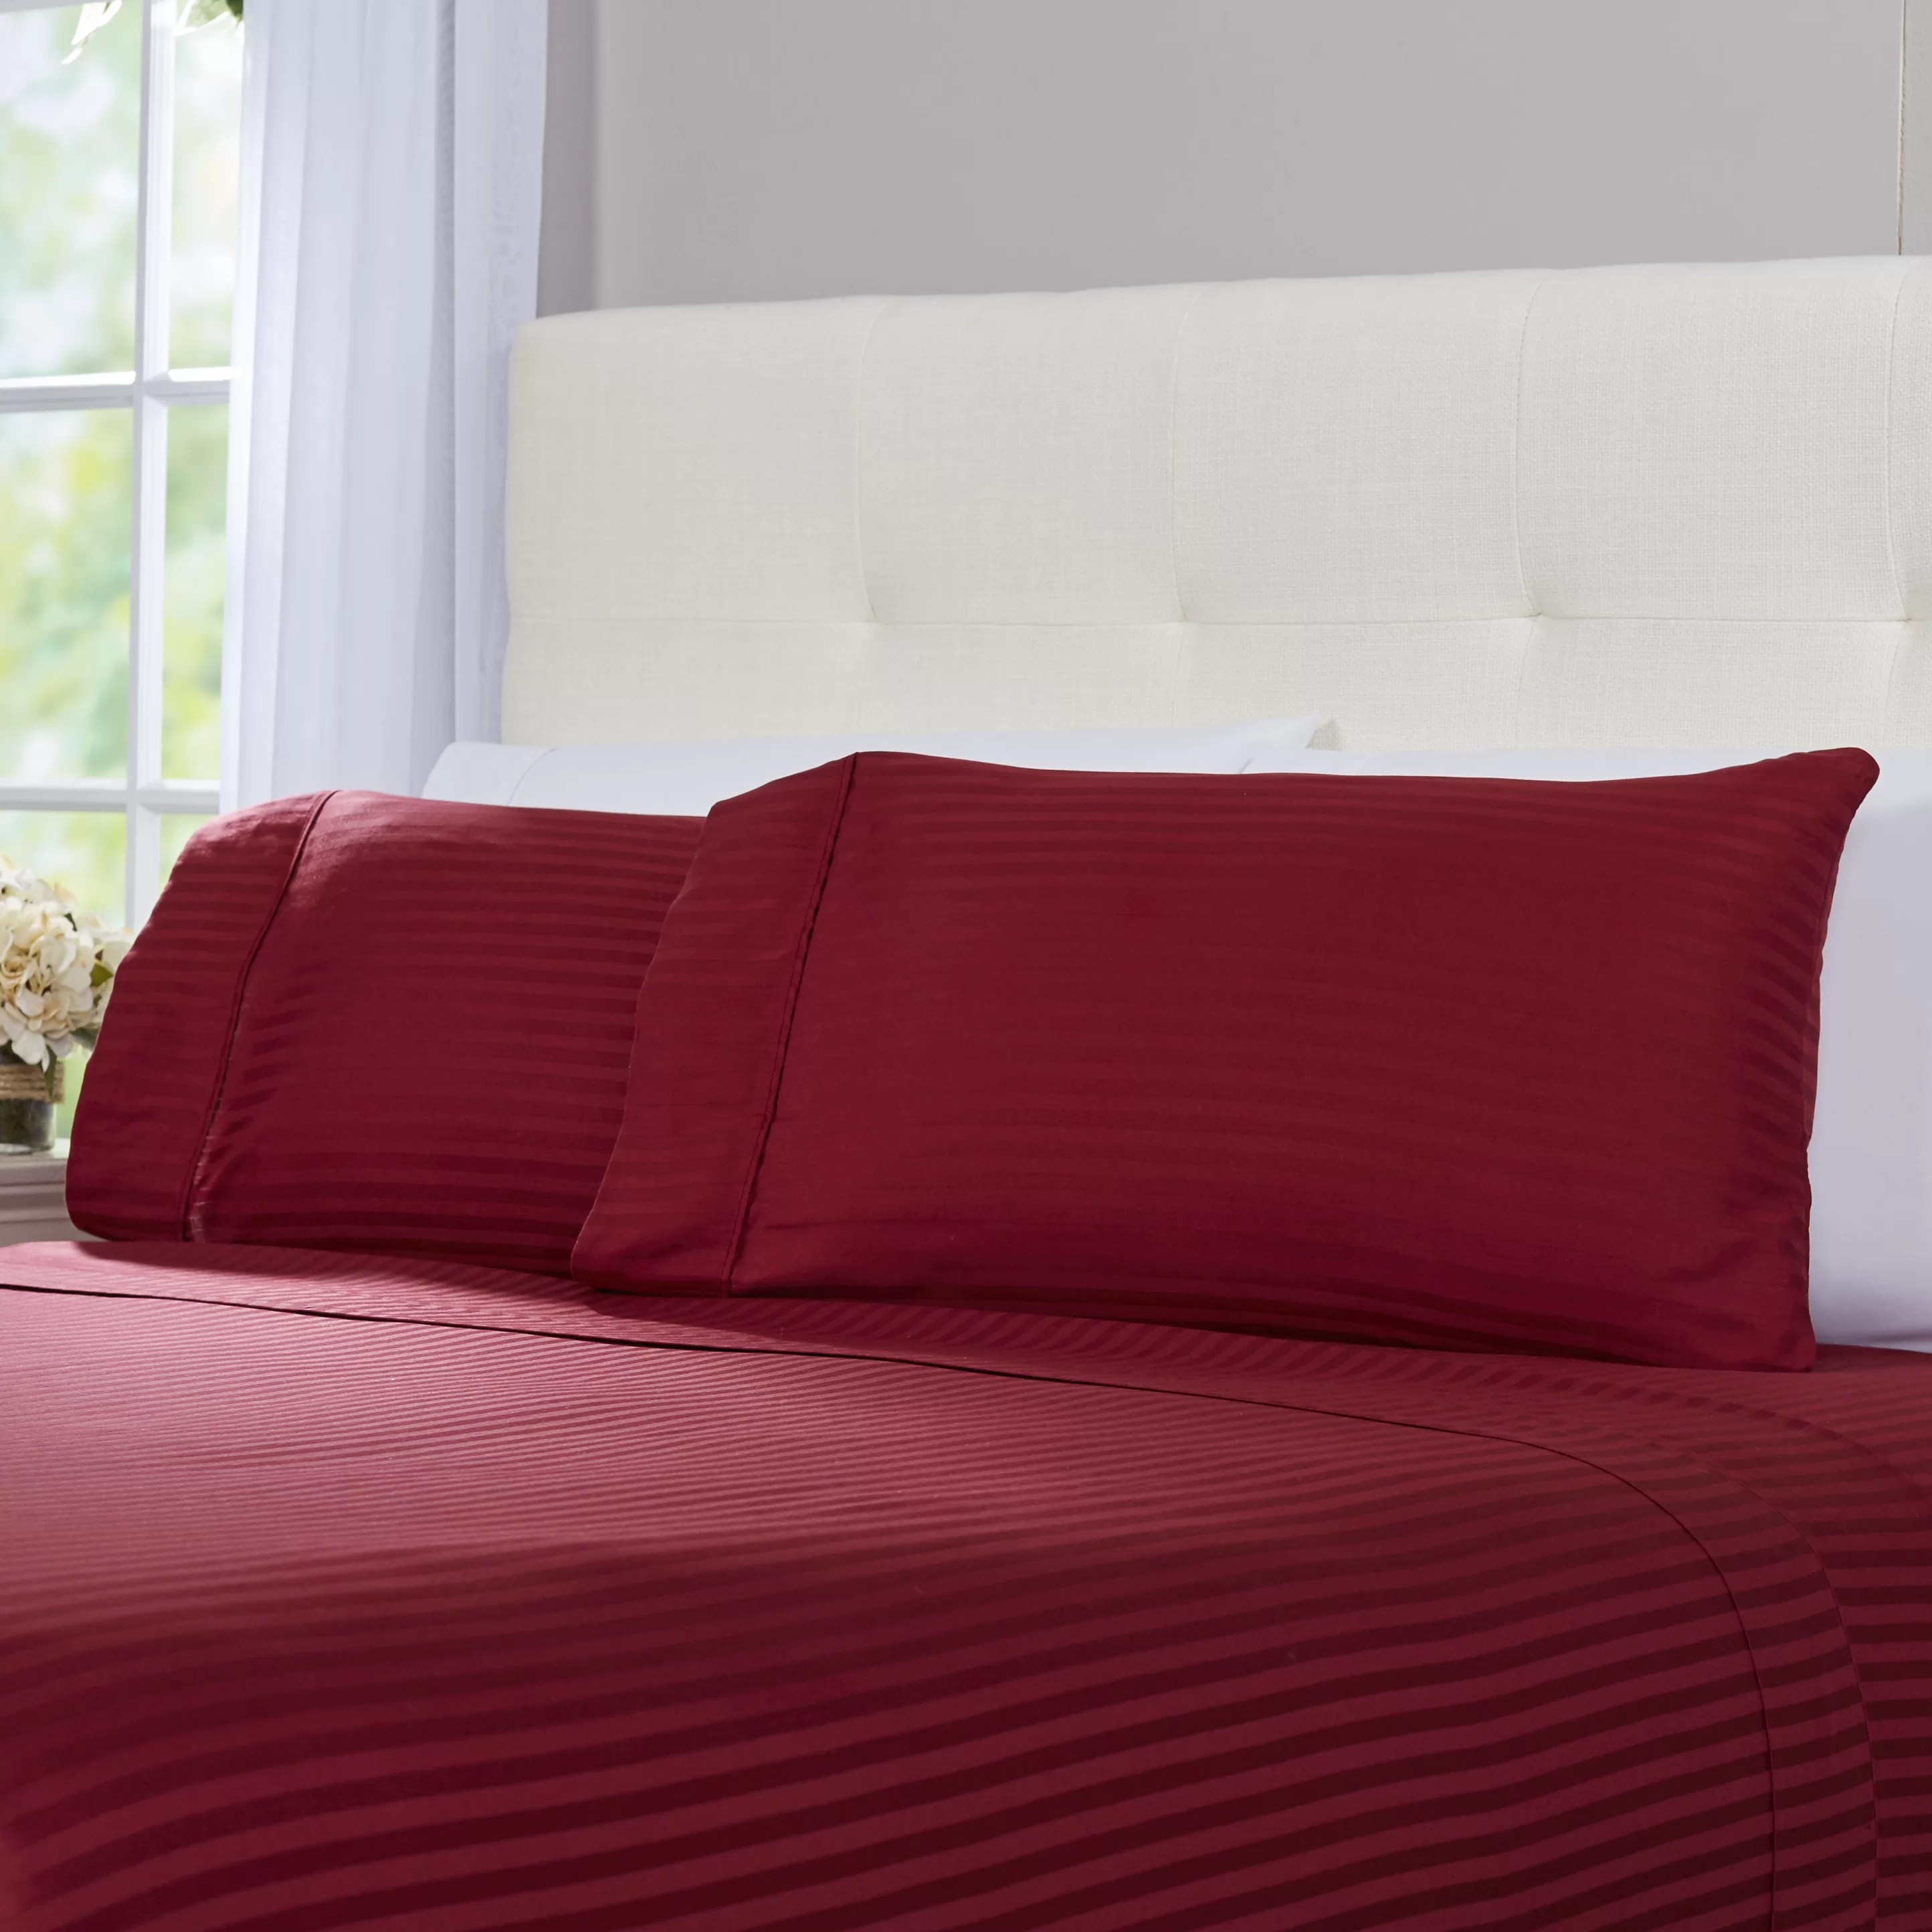 100 Egyptian Cotton Sheets Hogansville 300 Thread Count Striped 100 Egyptian Quality Cotton Sheet Set